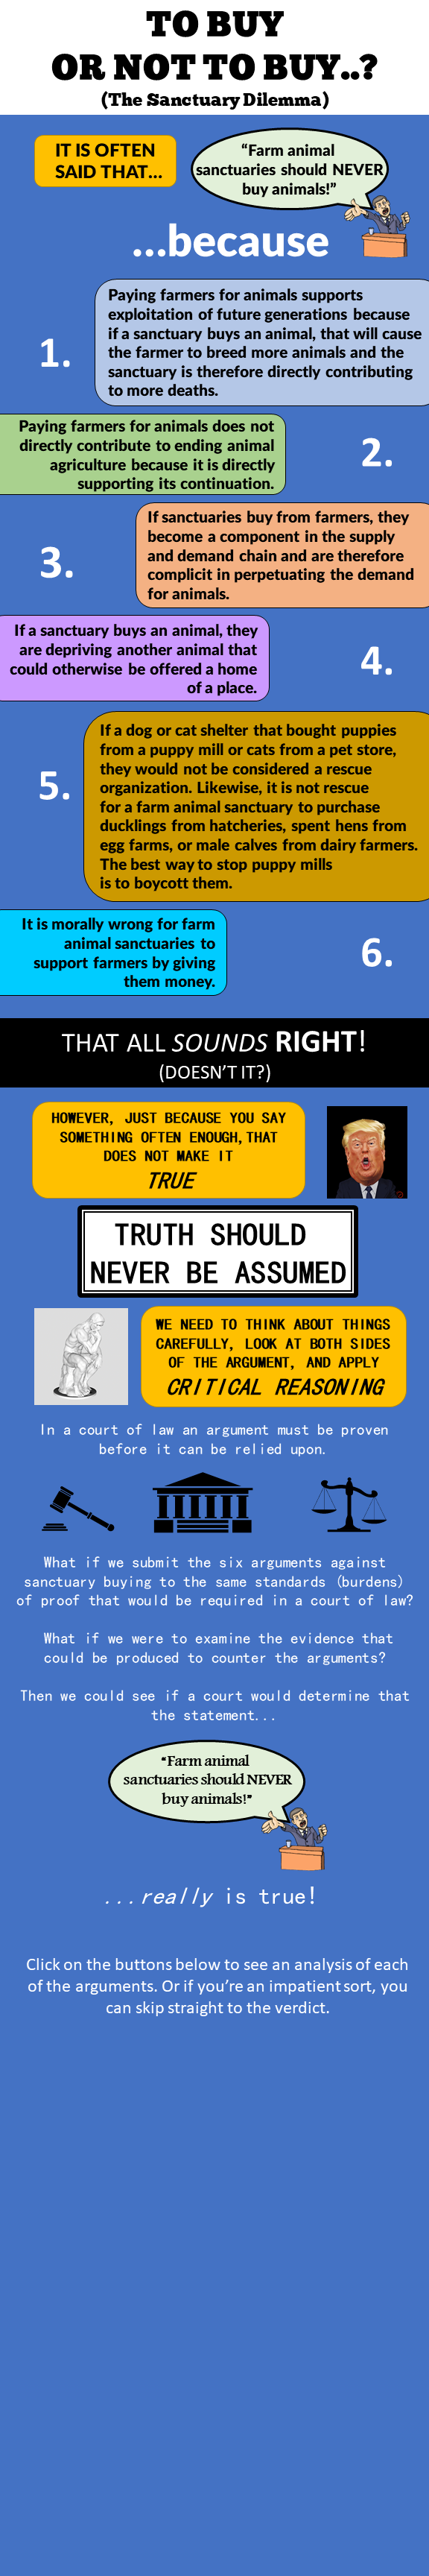 buy or no buy infographic1.png